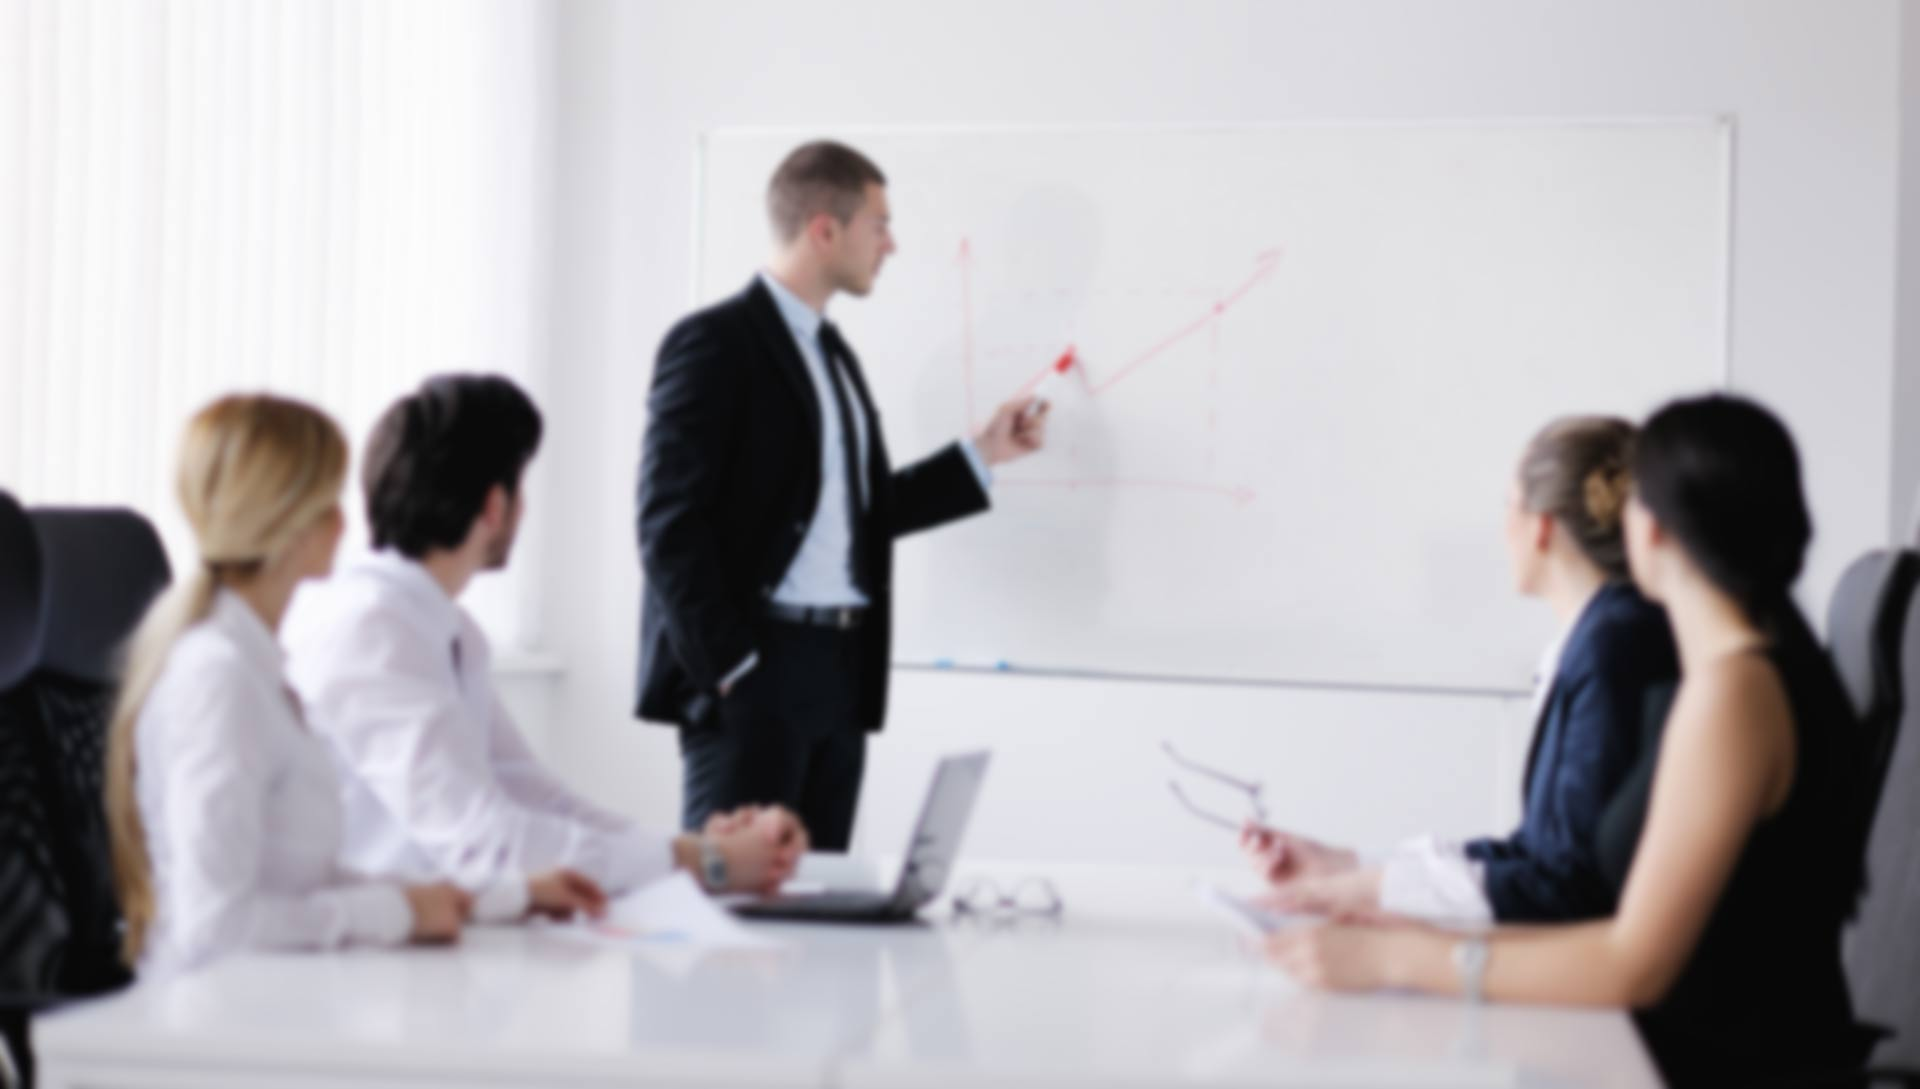 Formation leadership, il m'a fallu juste quelques semaines